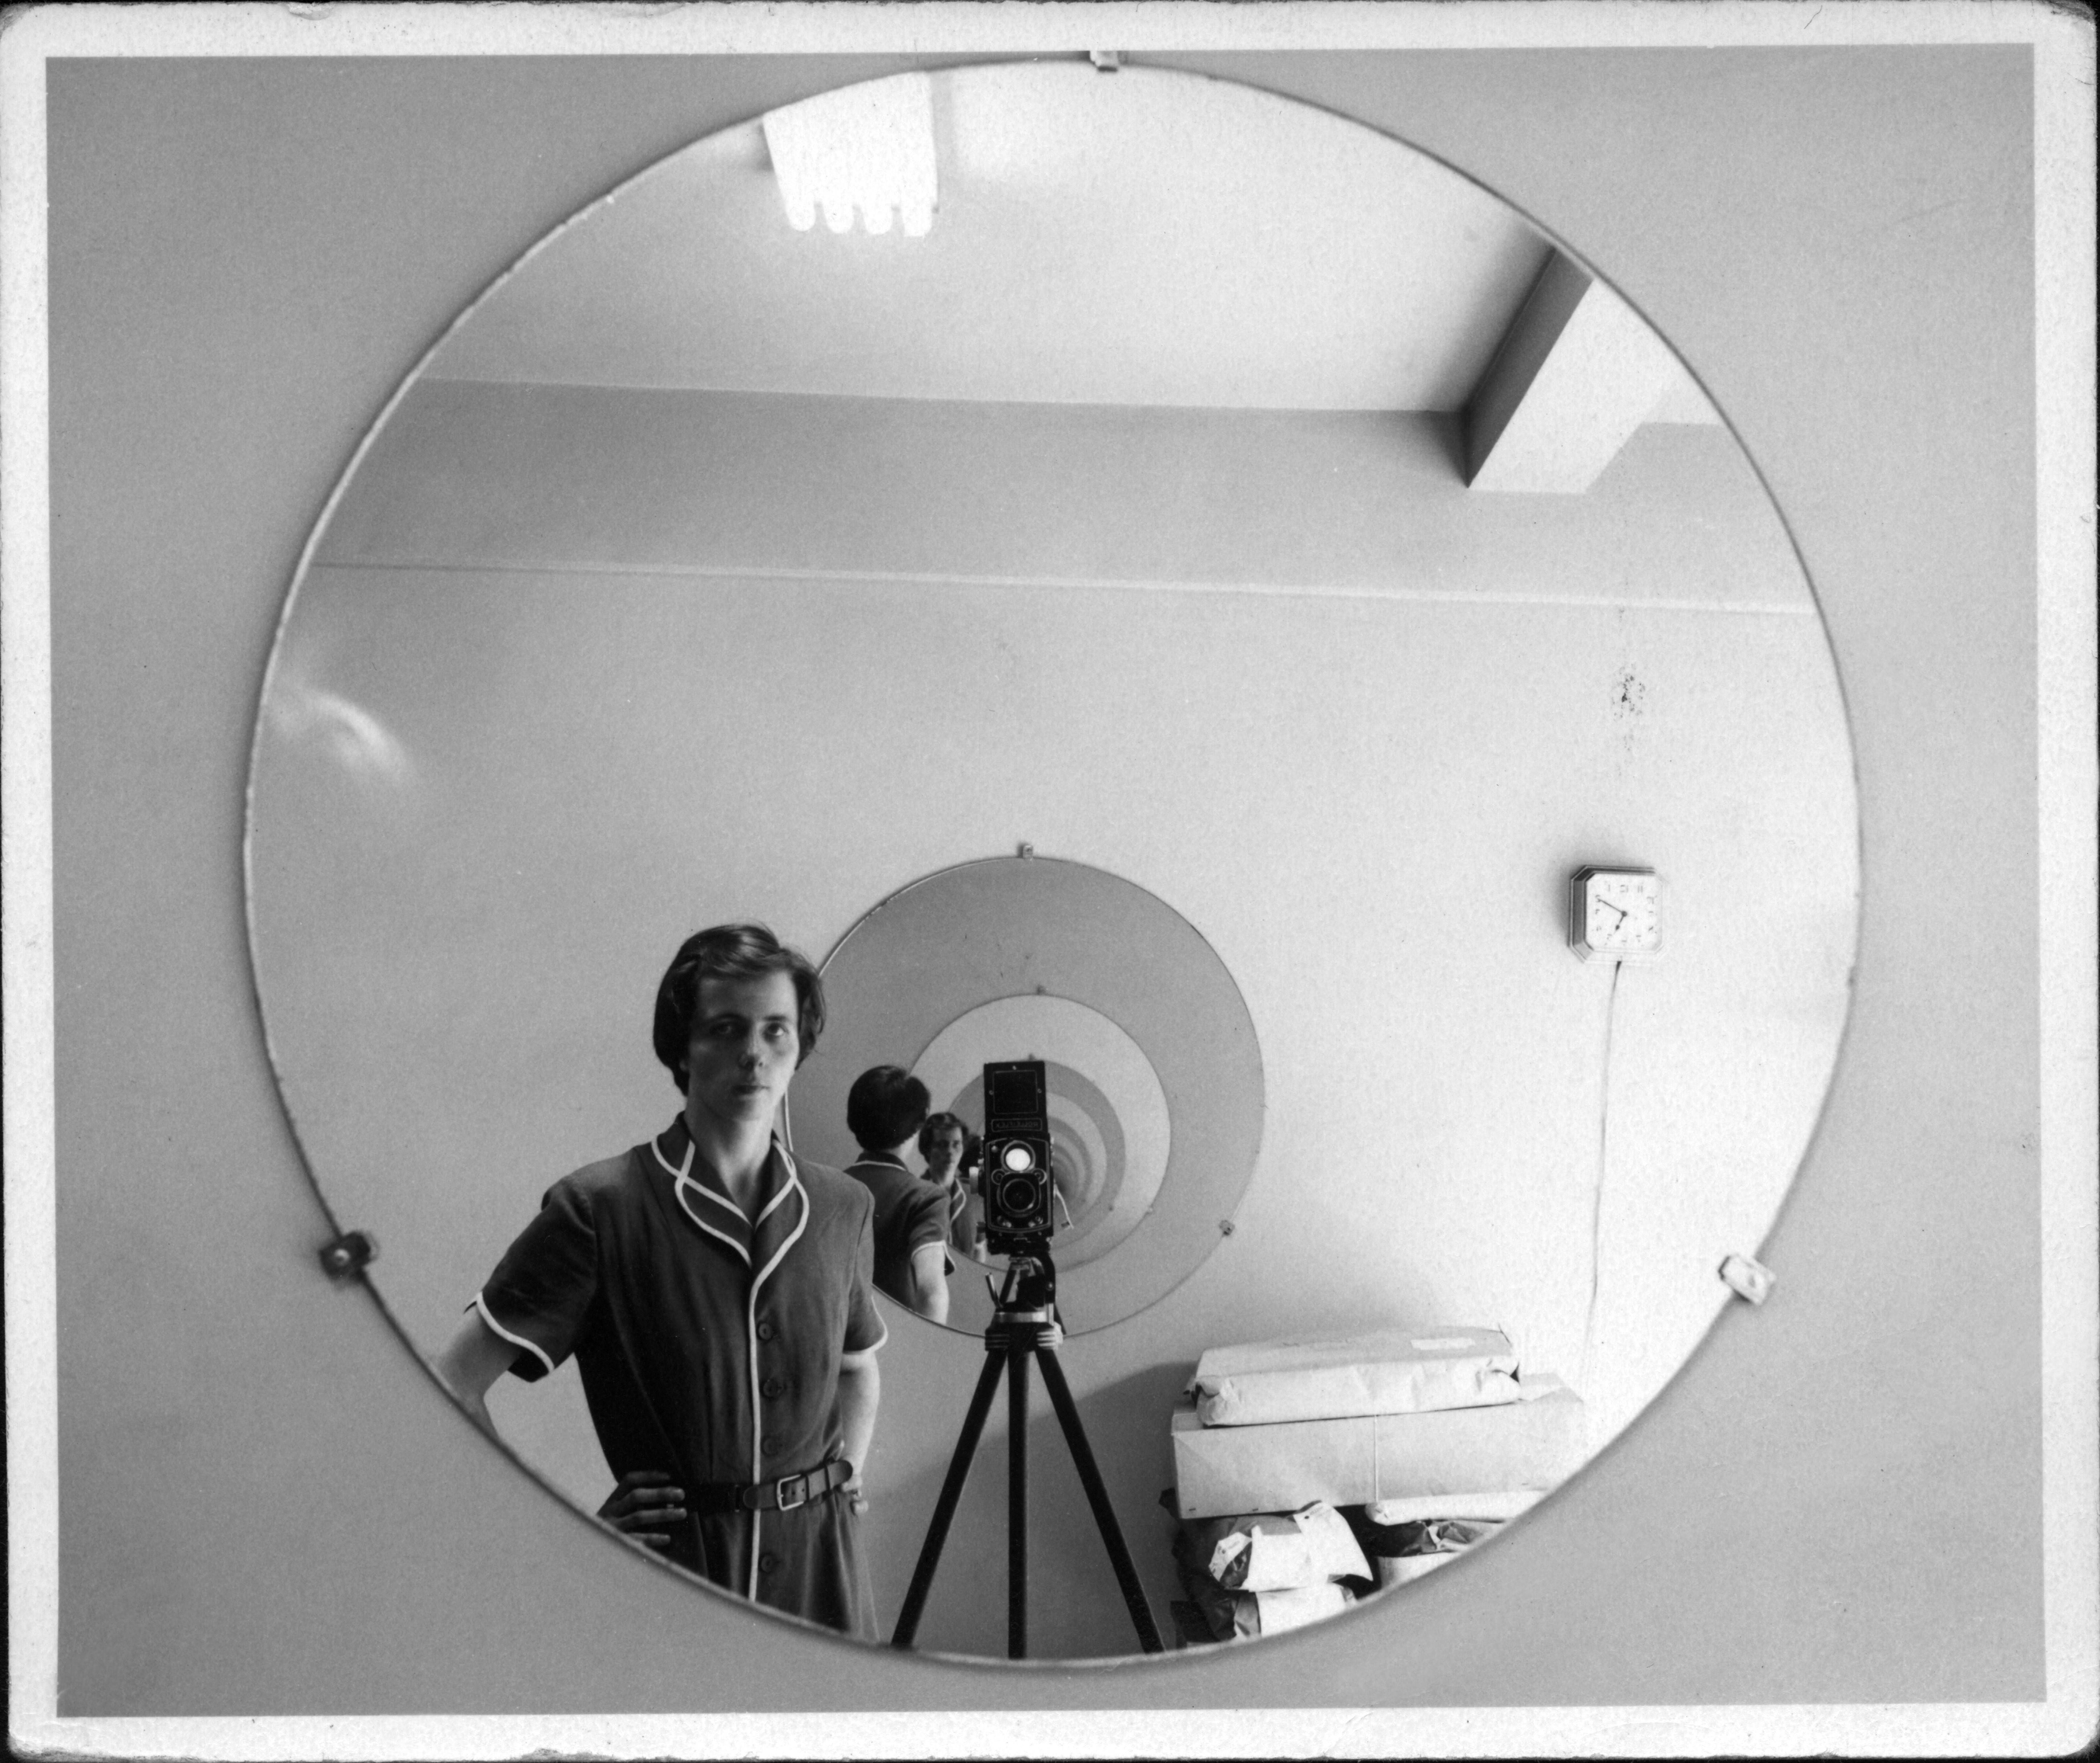 """An Afternoon with Vivian Maier"" features a screening of the documentary ""The Vivian Maier Mystery"" at the College of DuPage's McAninch Arts Center's Cleve Carney Art Gallery in Glen Ellyn at 1 p.m. Sunday, July 27."